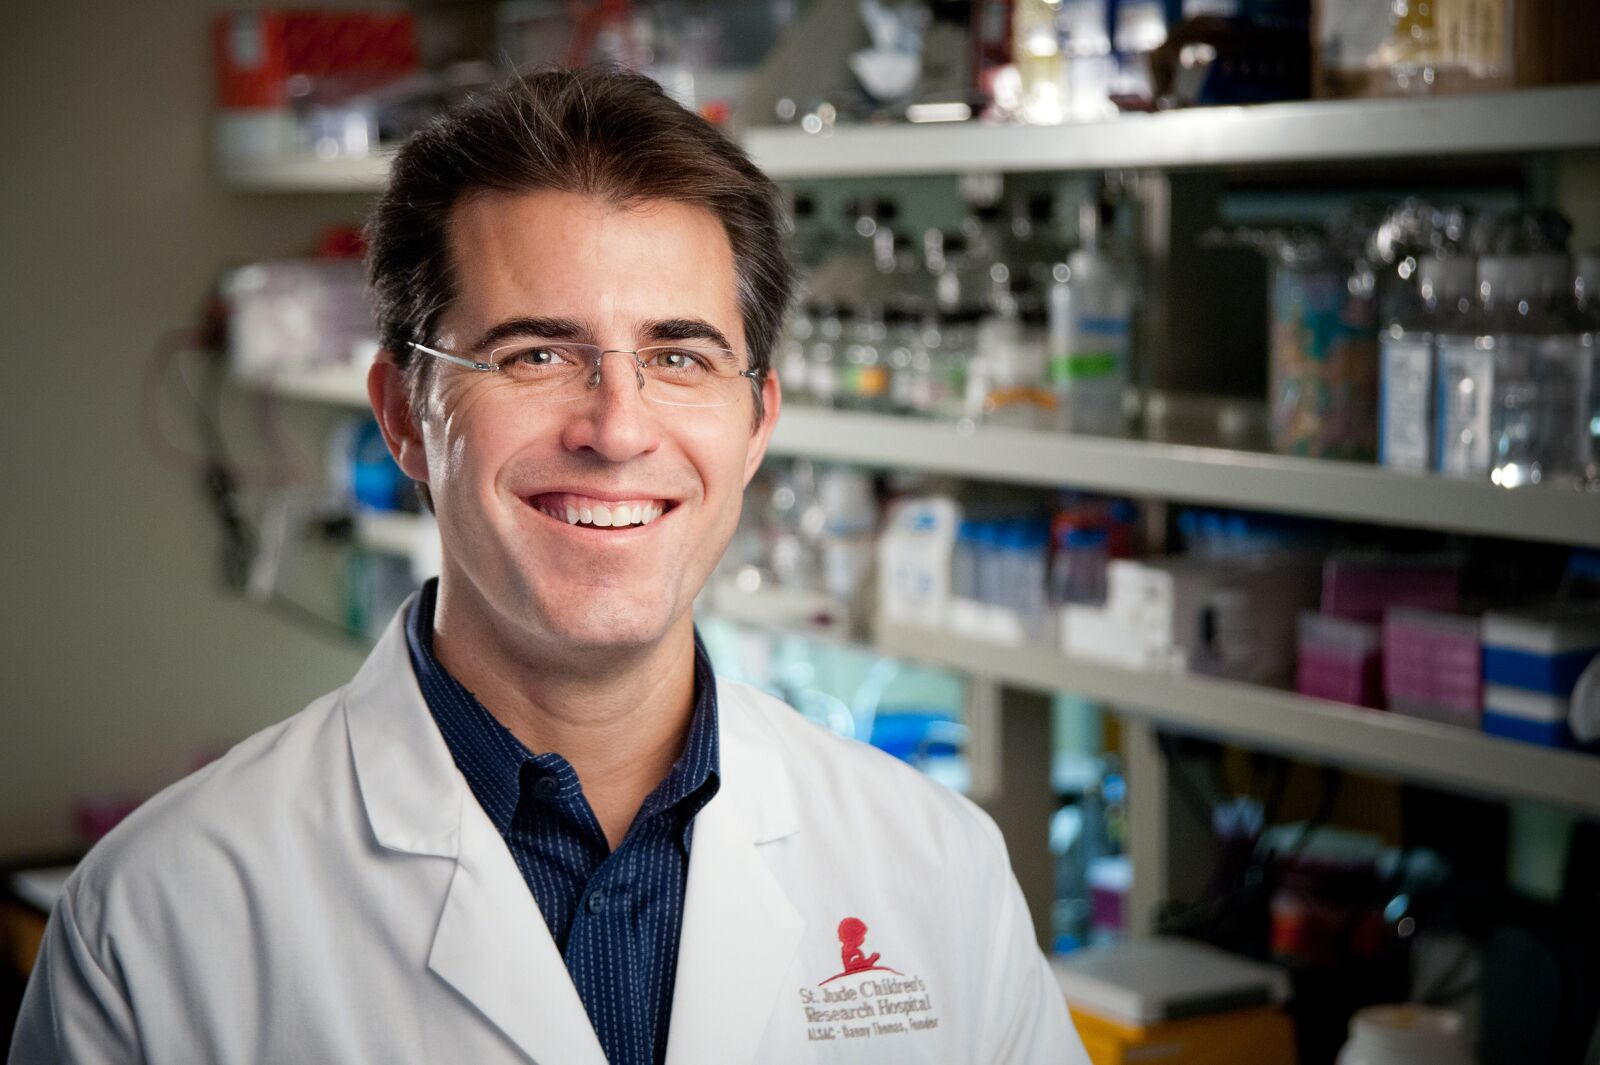 Corresponding author Michael Dyer, Ph.D., chair of the St. Jude Department of Developmental Neurobiology and a Howard Hughes Medical Institute investigator